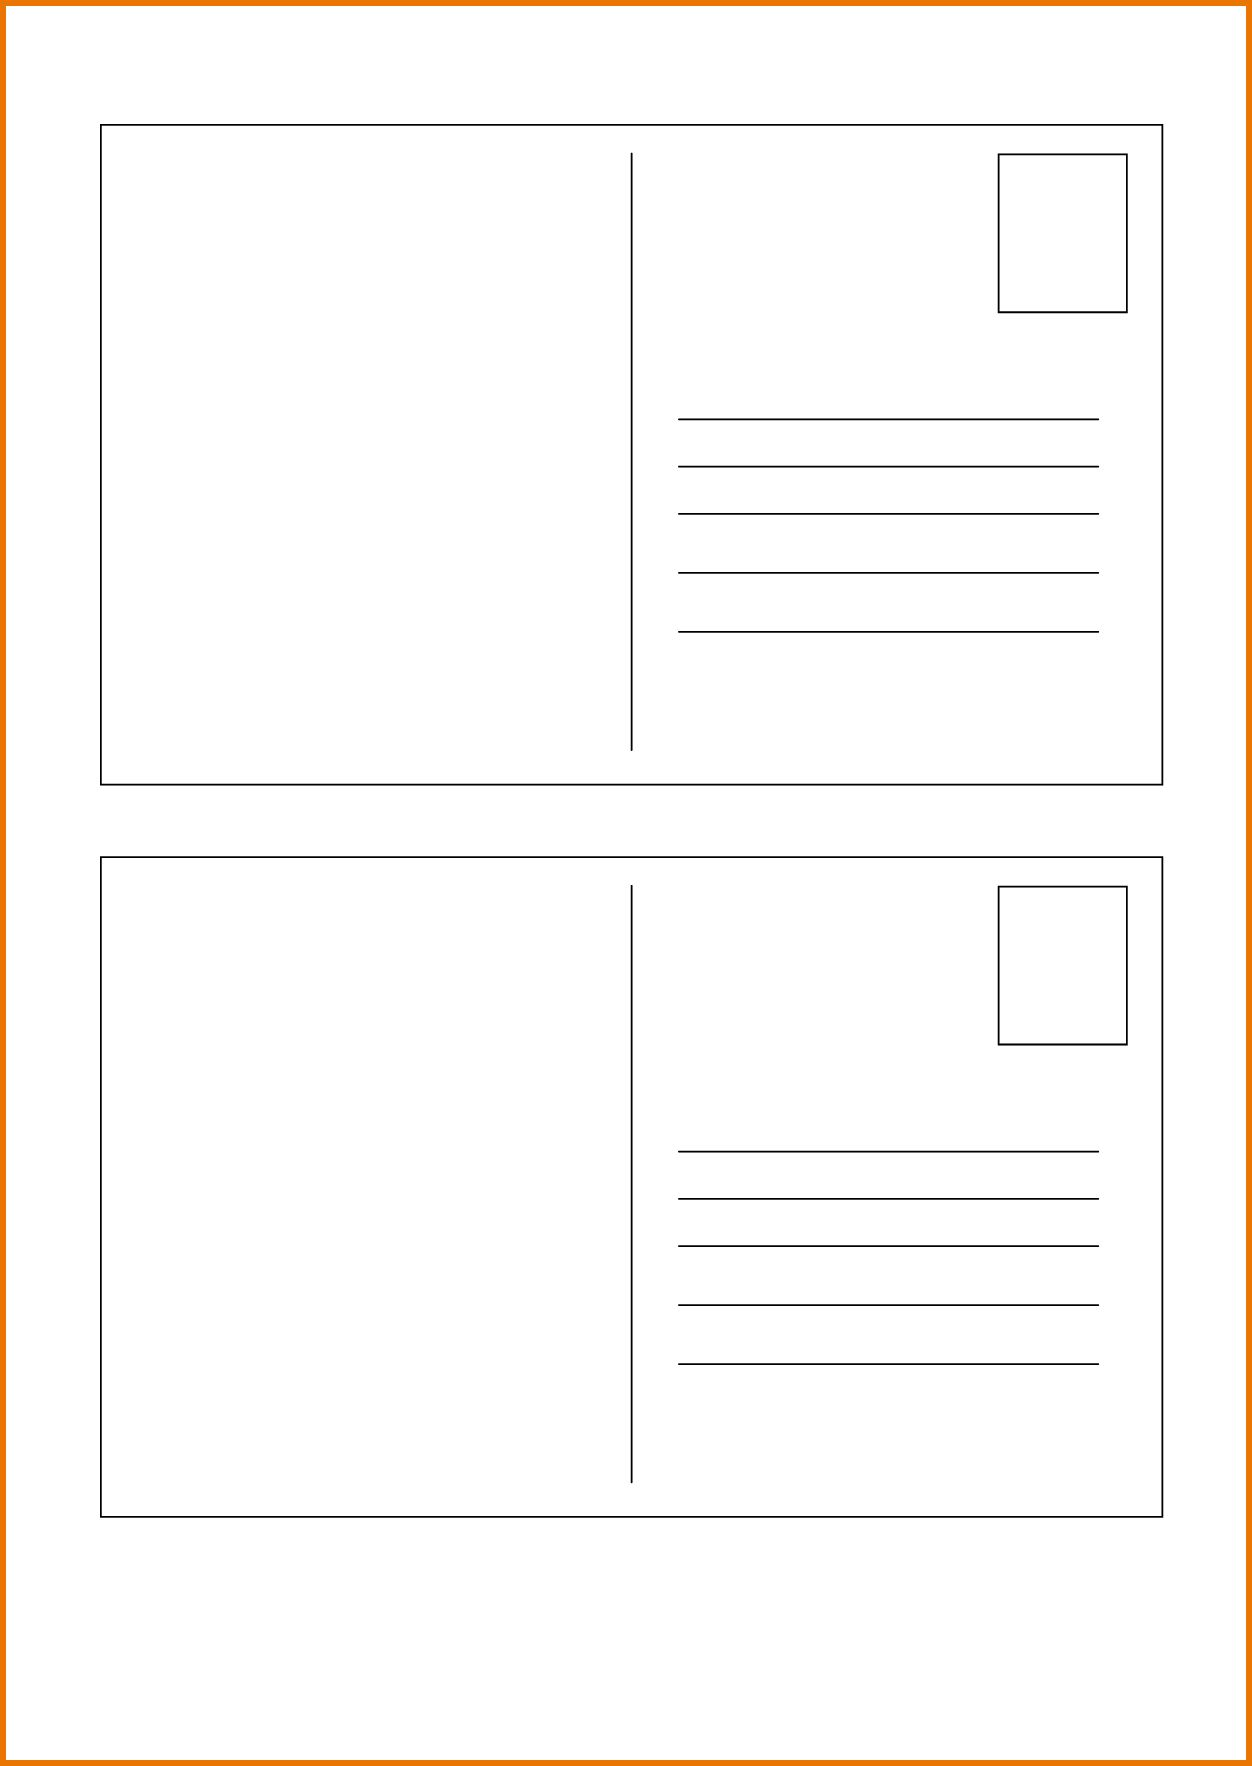 036 Template Ideas Blank Postcard Free Classic White With Within Microsoft Word 4x6 Postcard Templ Postcard Template Postcard Template Free Printable Postcards